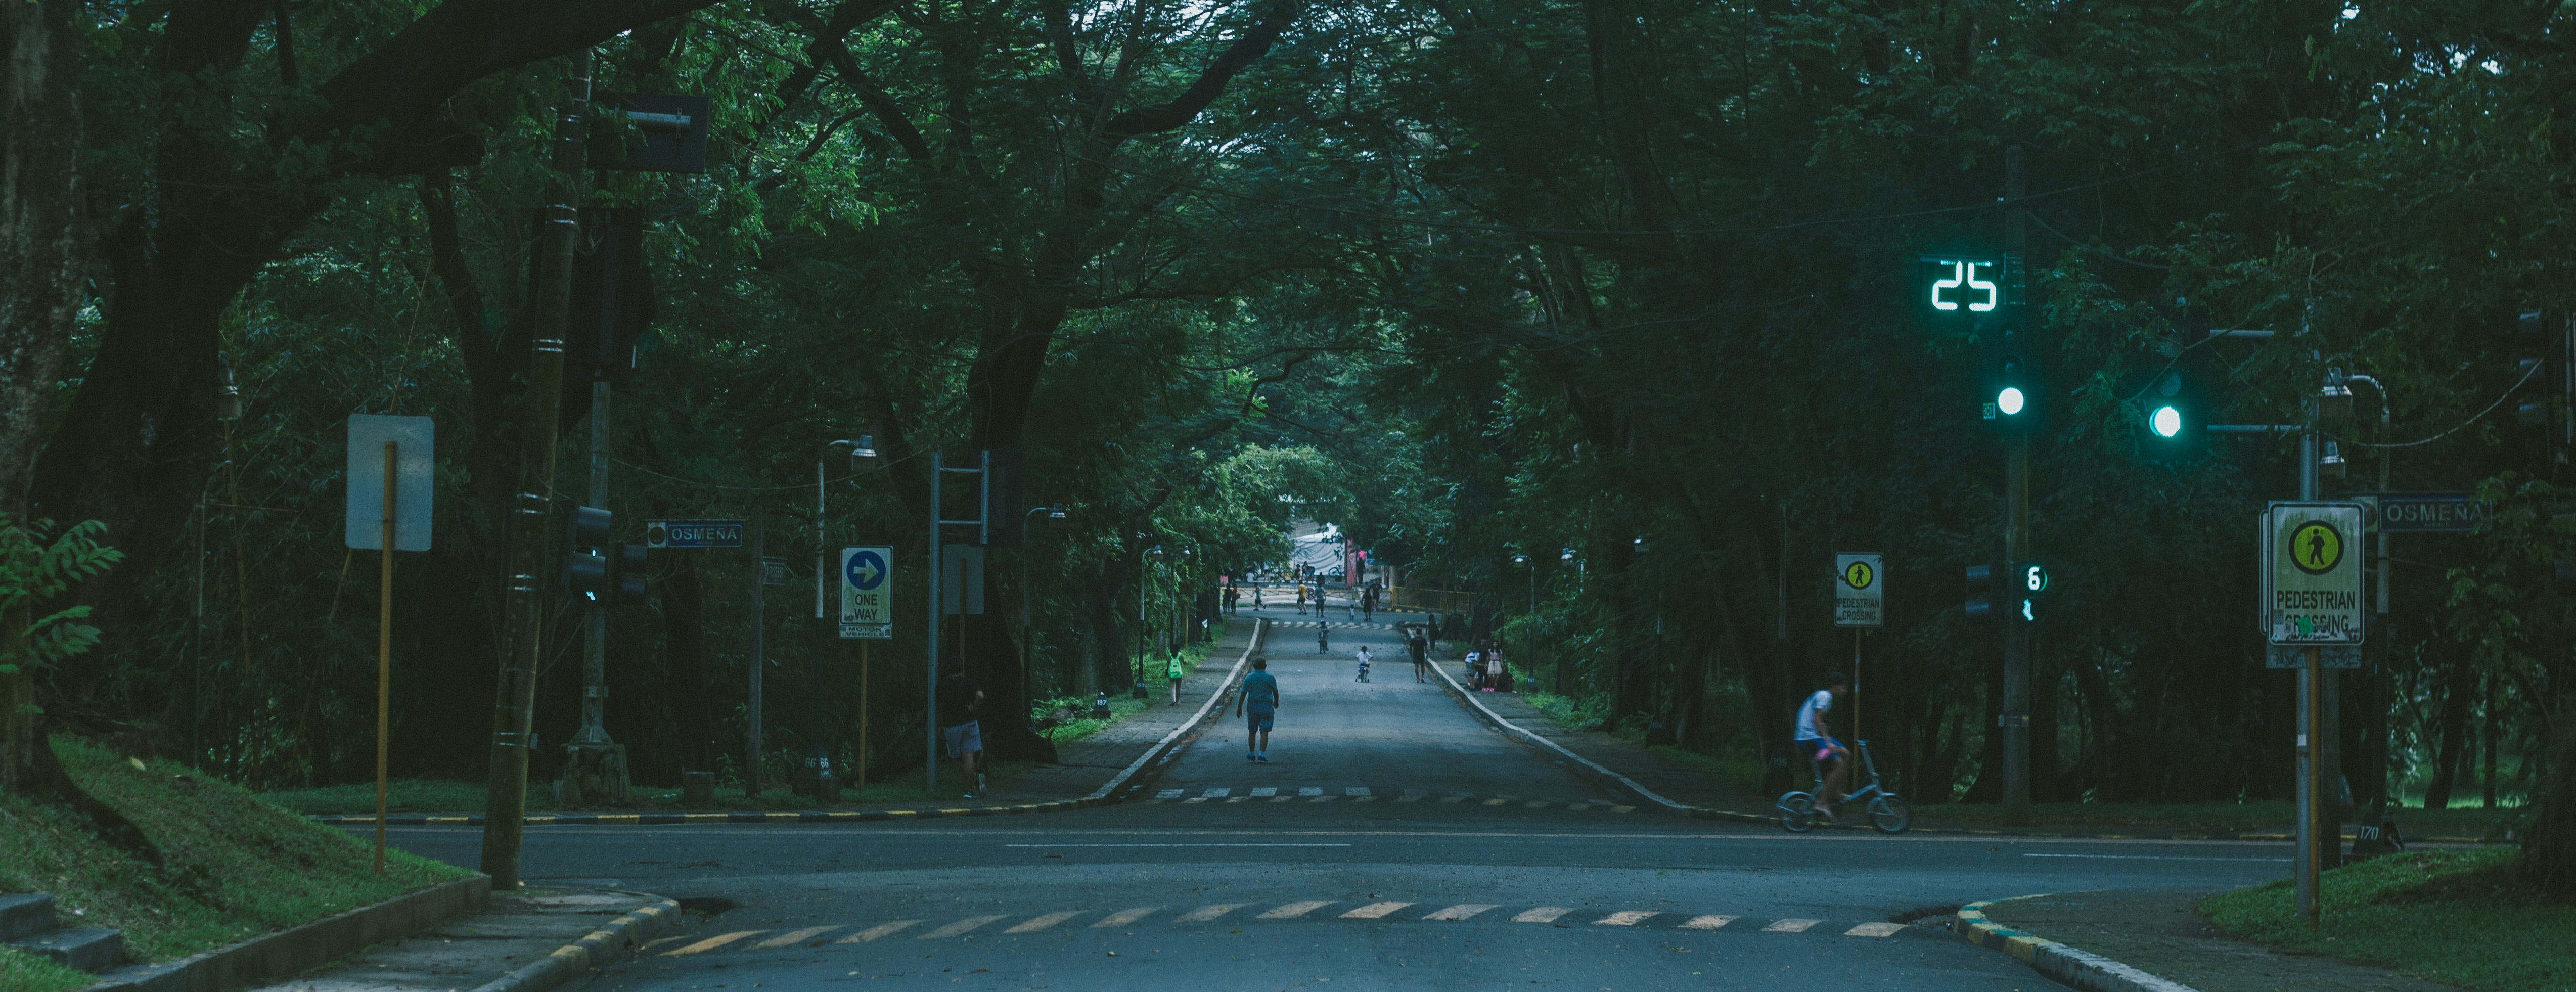 Free stock photo of street, trees, university of the philippines, diliman